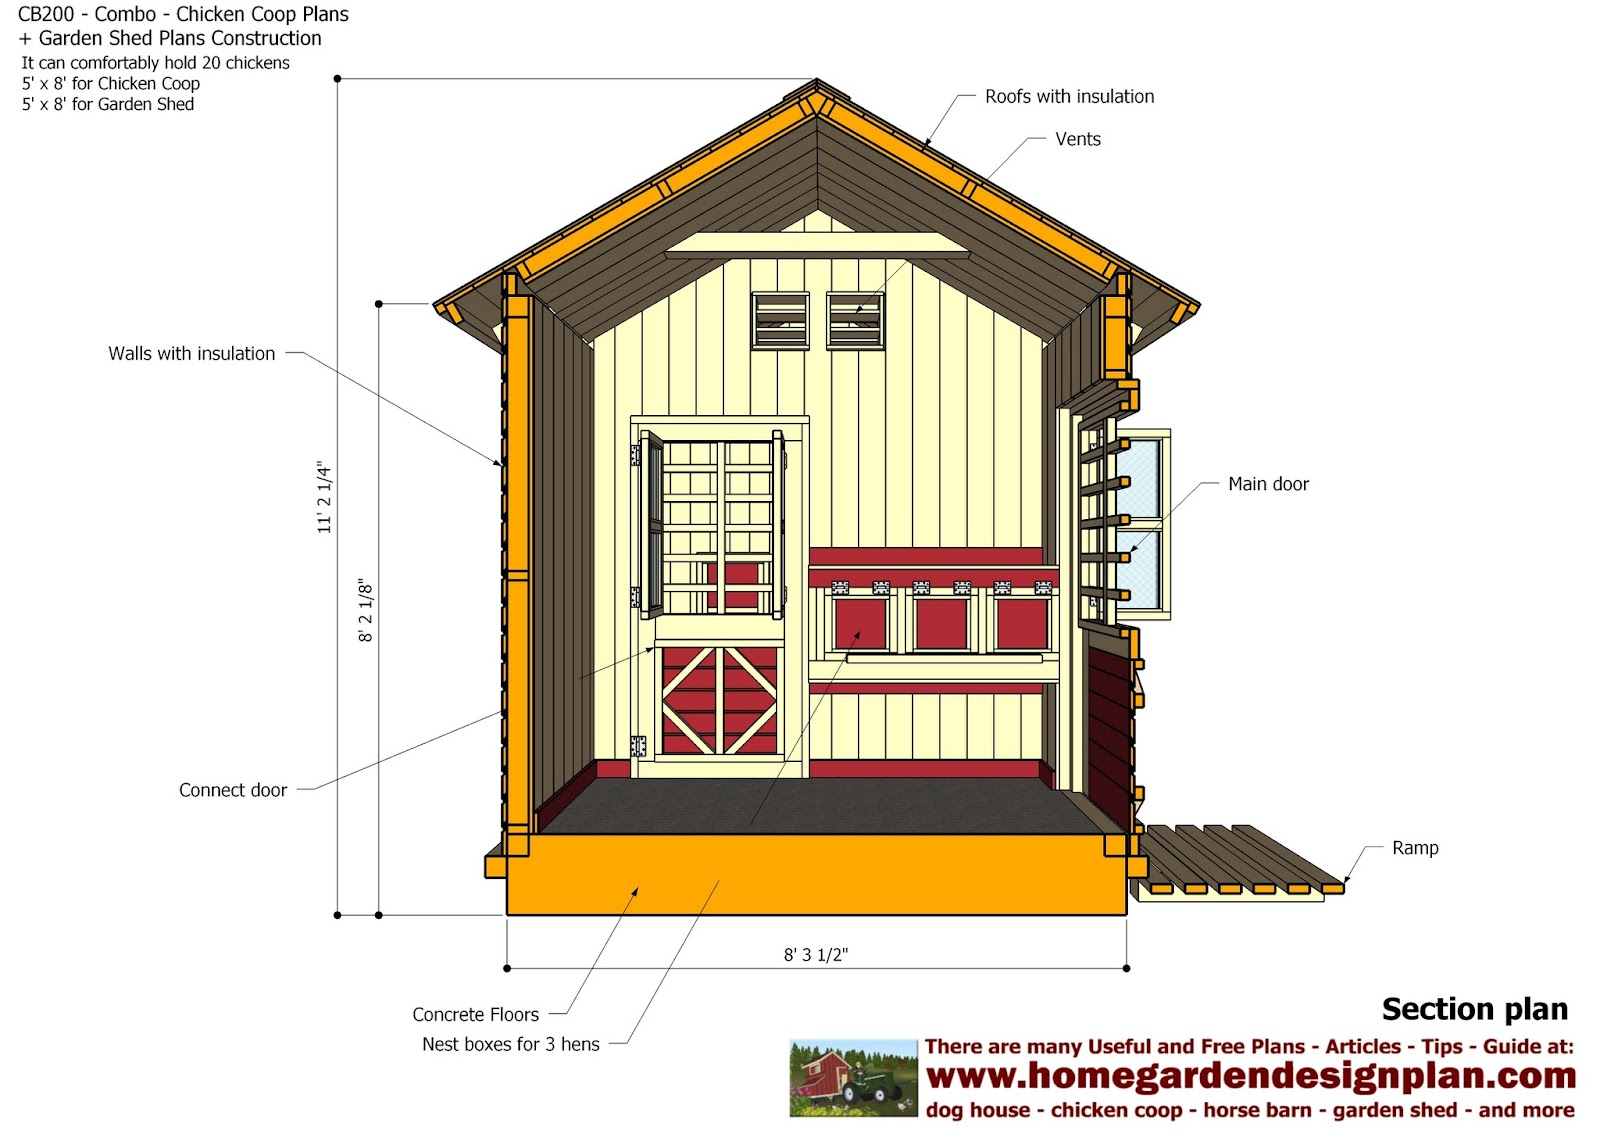 for chick coop: CB200 Combo Plans Chicken Coop Plans ...